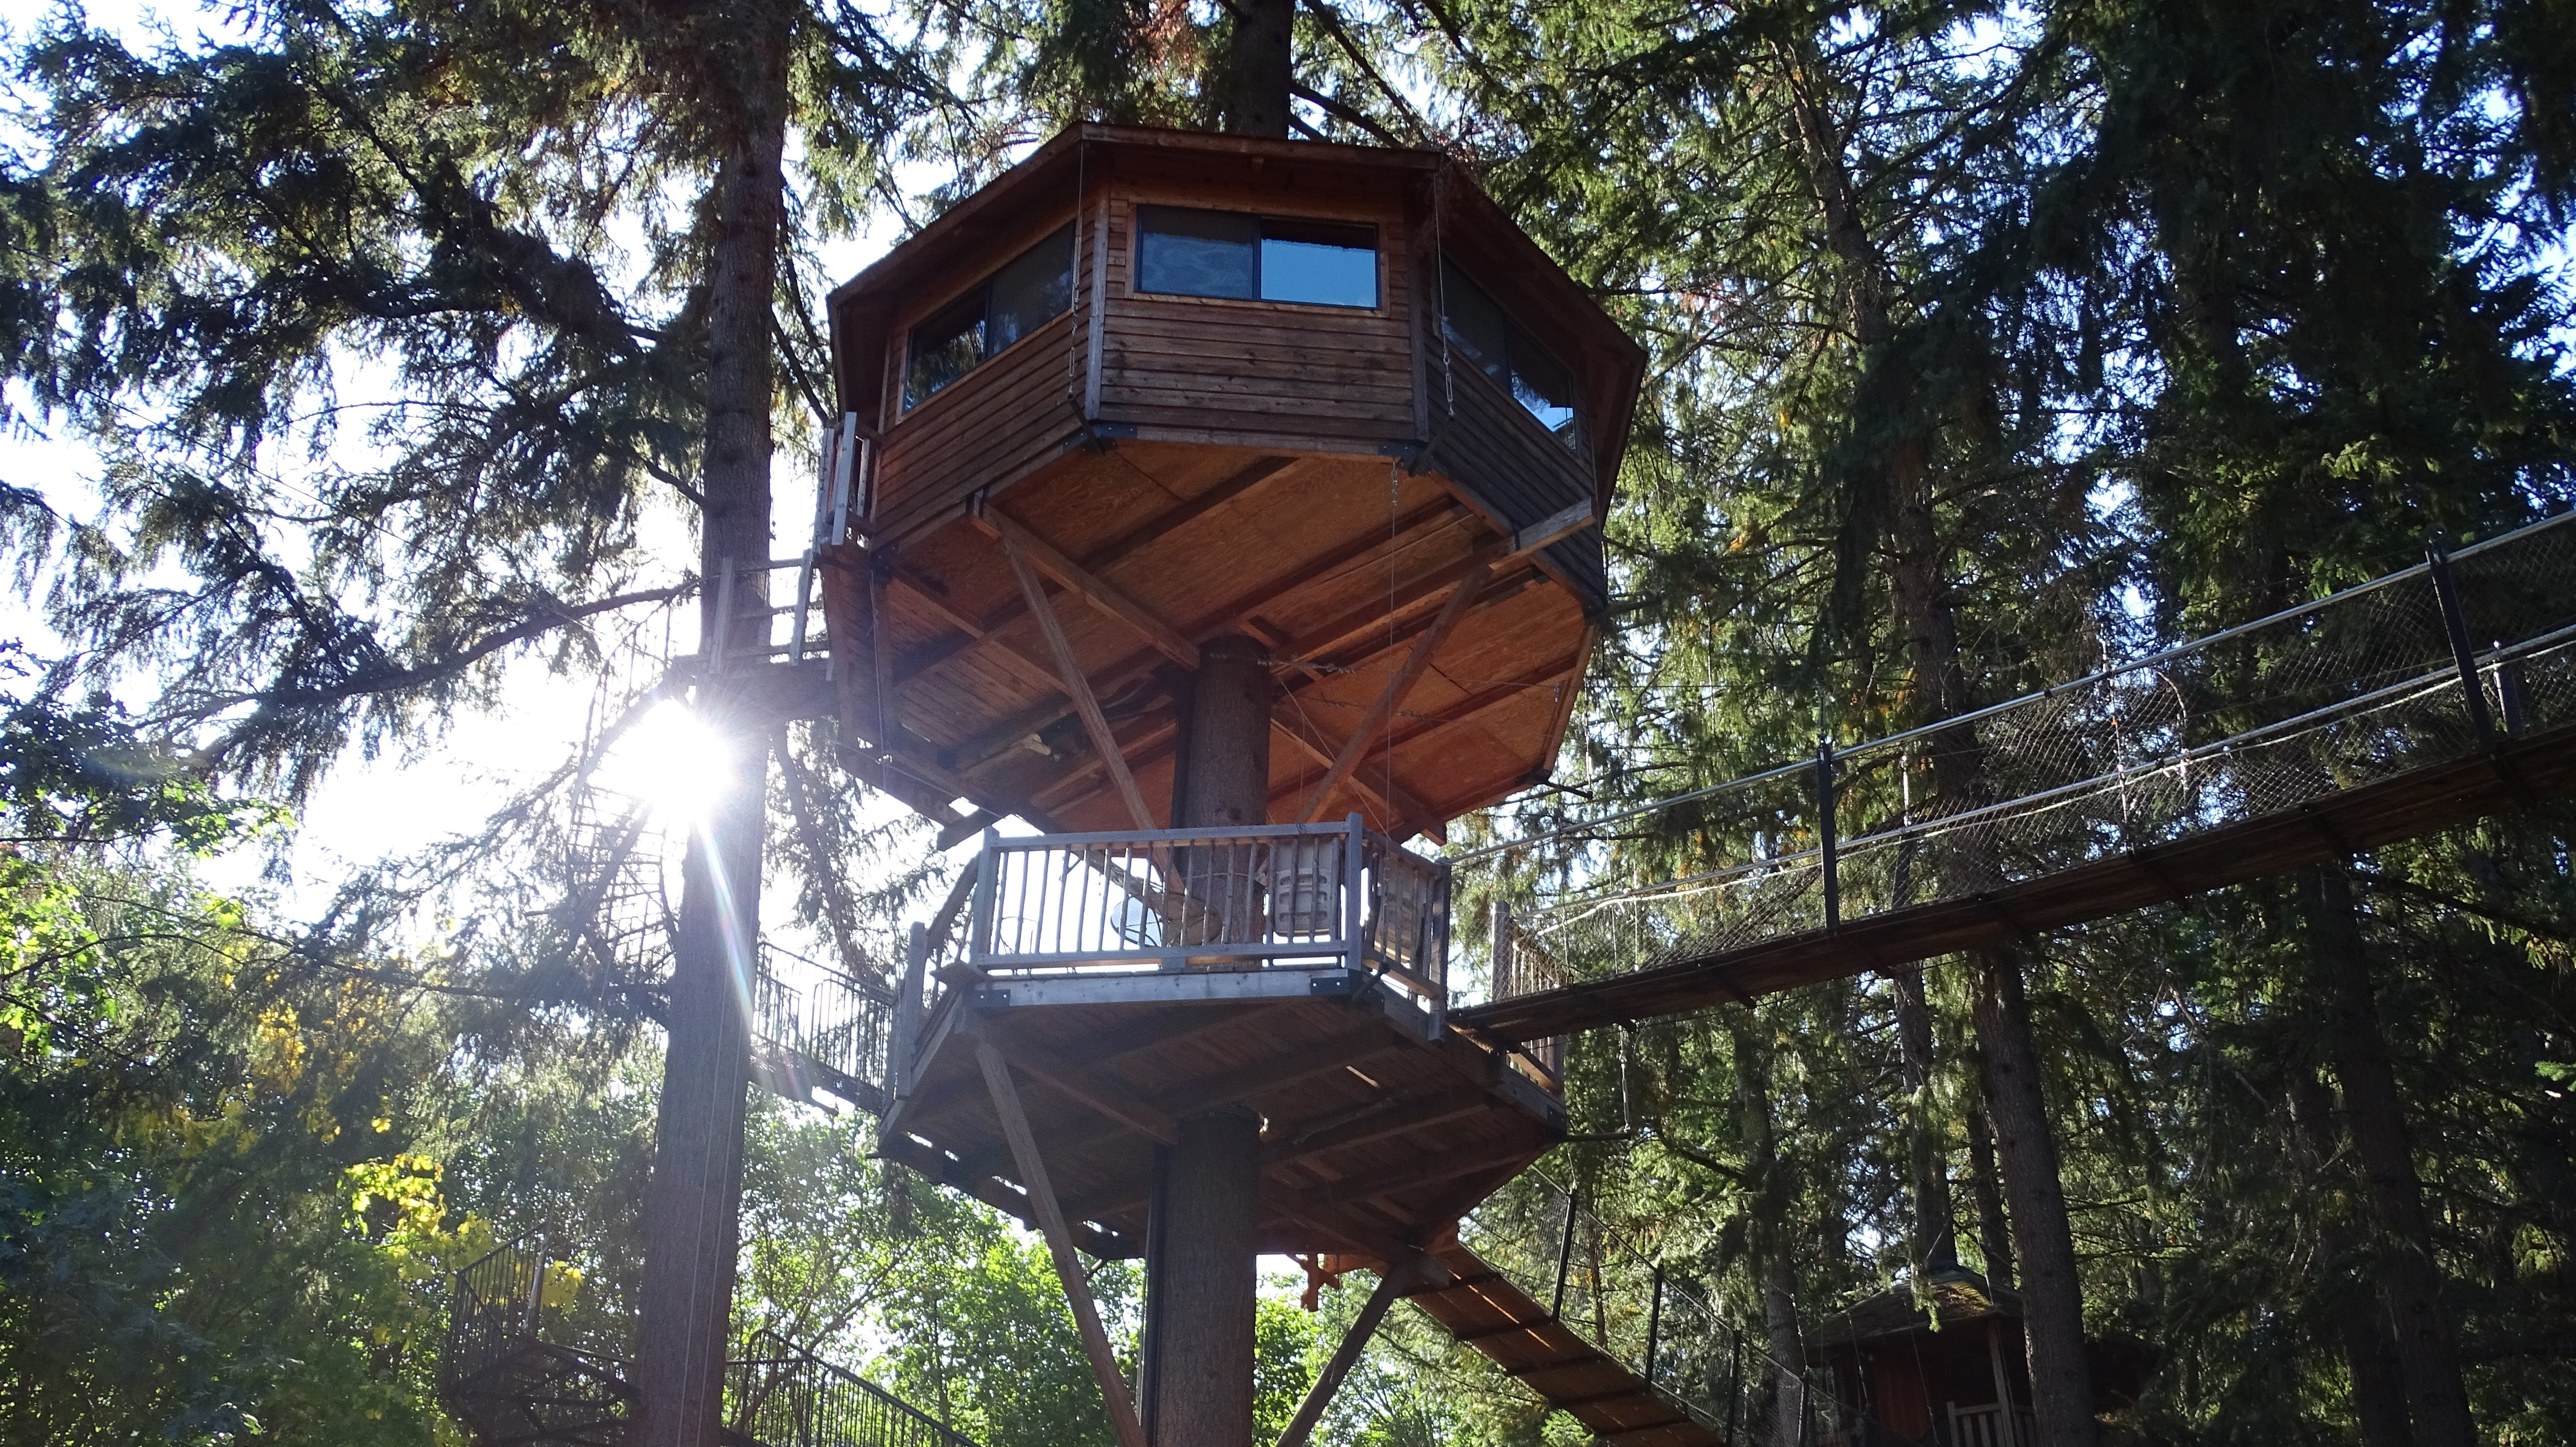 Tree house designs precision structural engineering for Structural engineer for houses